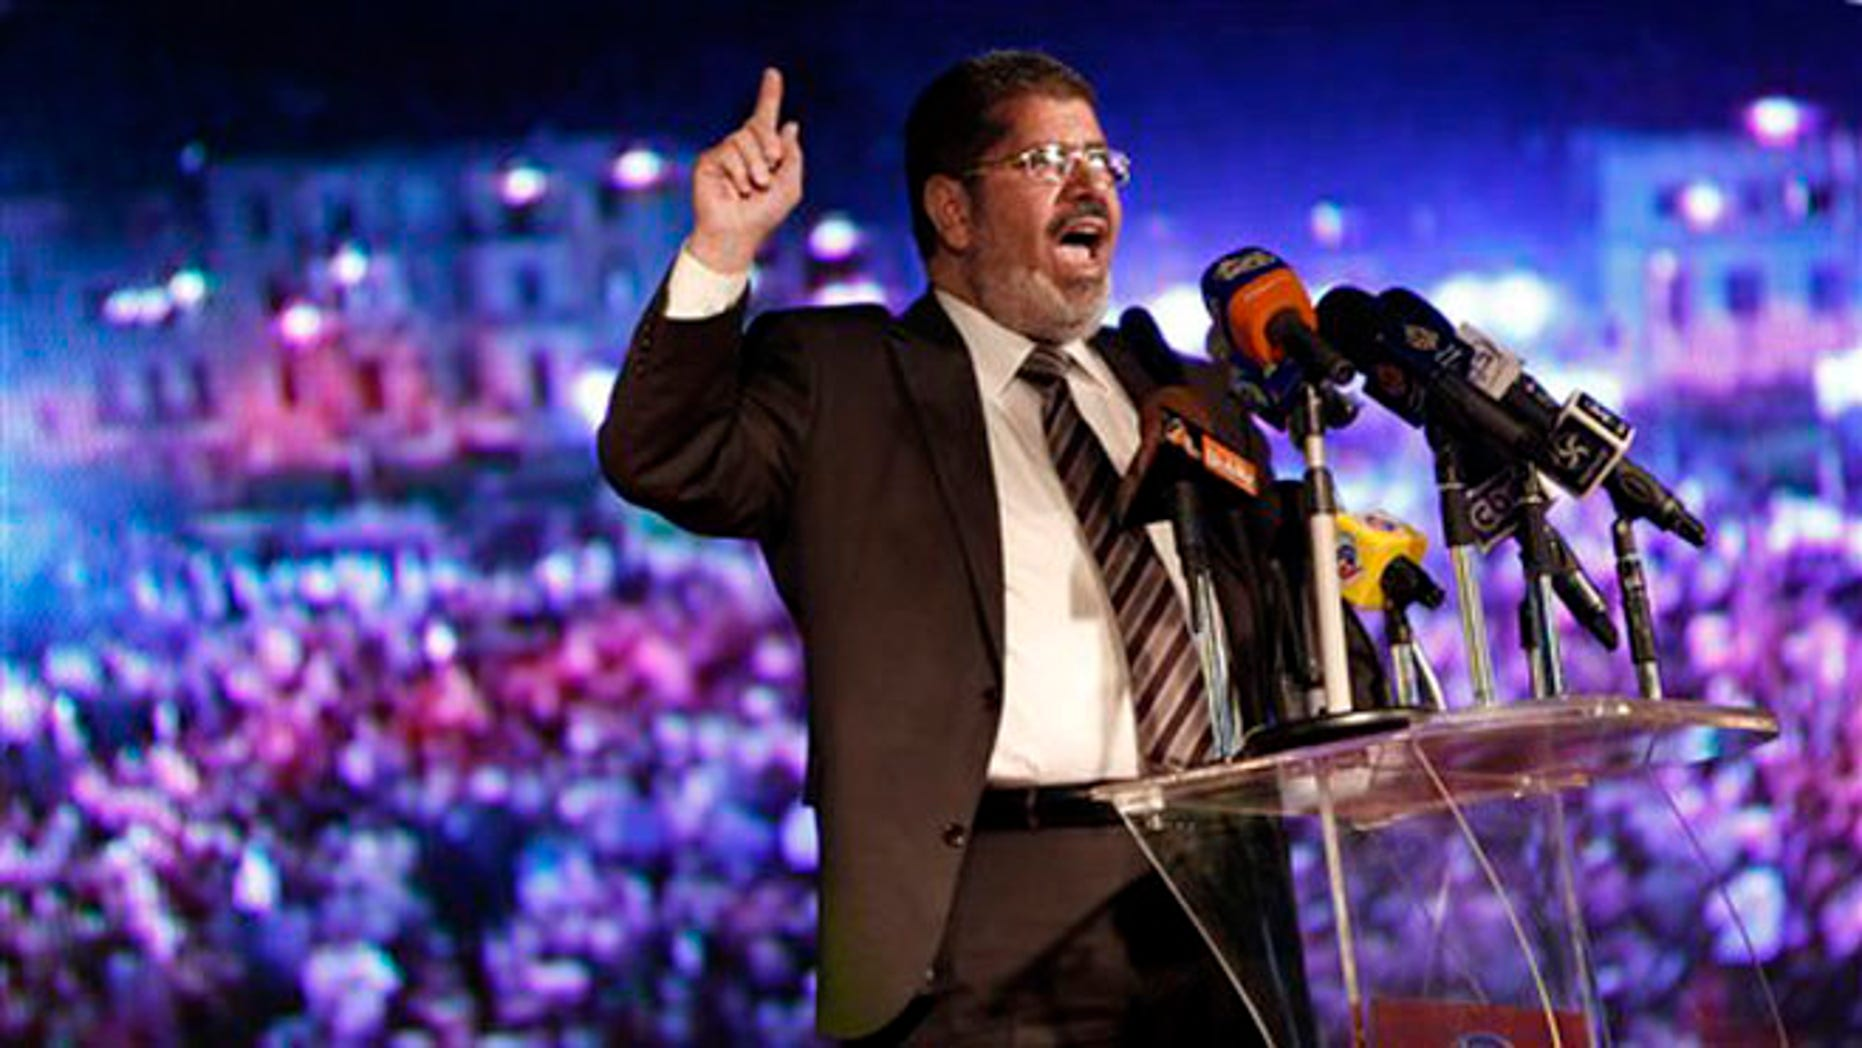 May 20, 2012: In this file photo, Muslim Brotherhood's president-elect Mohammed Morsi speaks at his last rally in Cairo, Egypt.